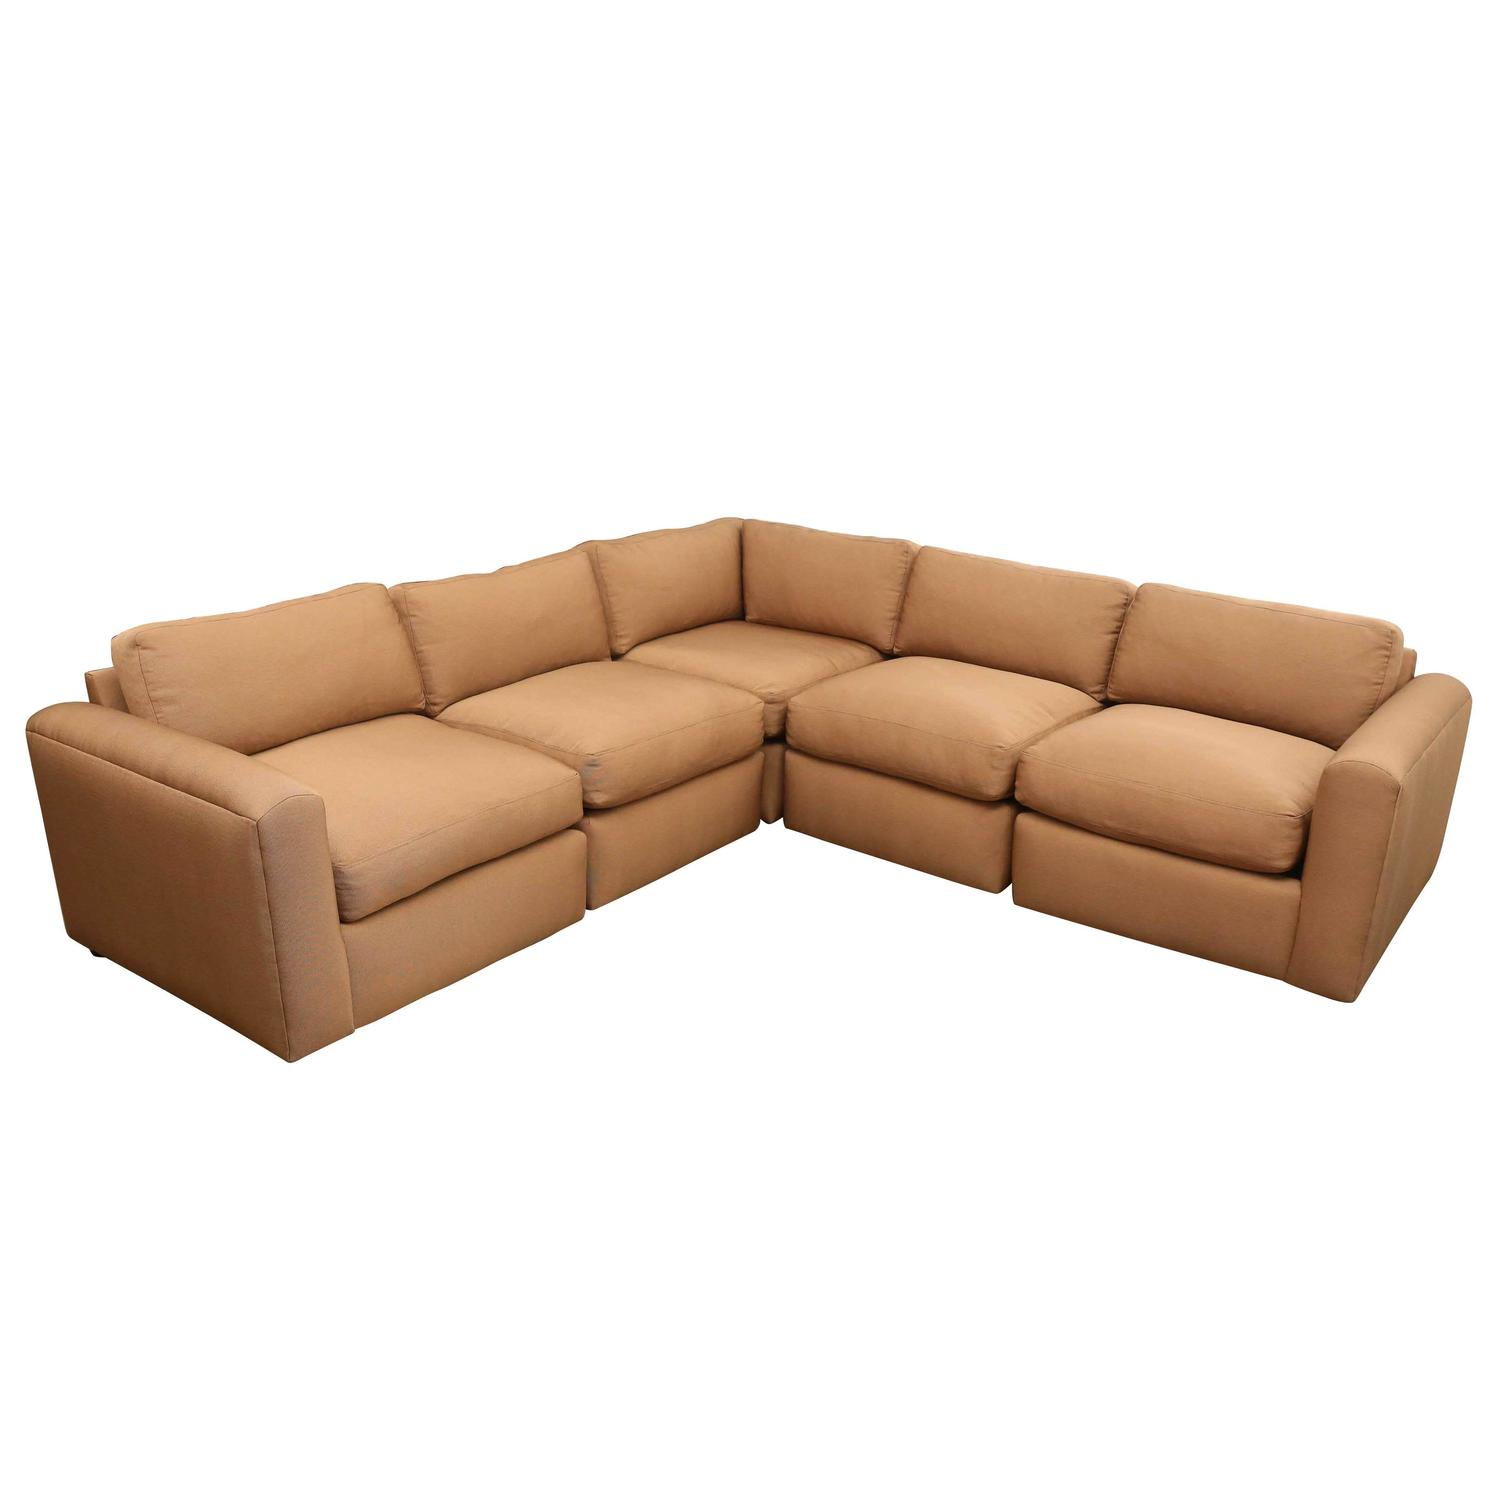 Antique and Vintage Sectional Sofas 421 For Sale at 1stdibs